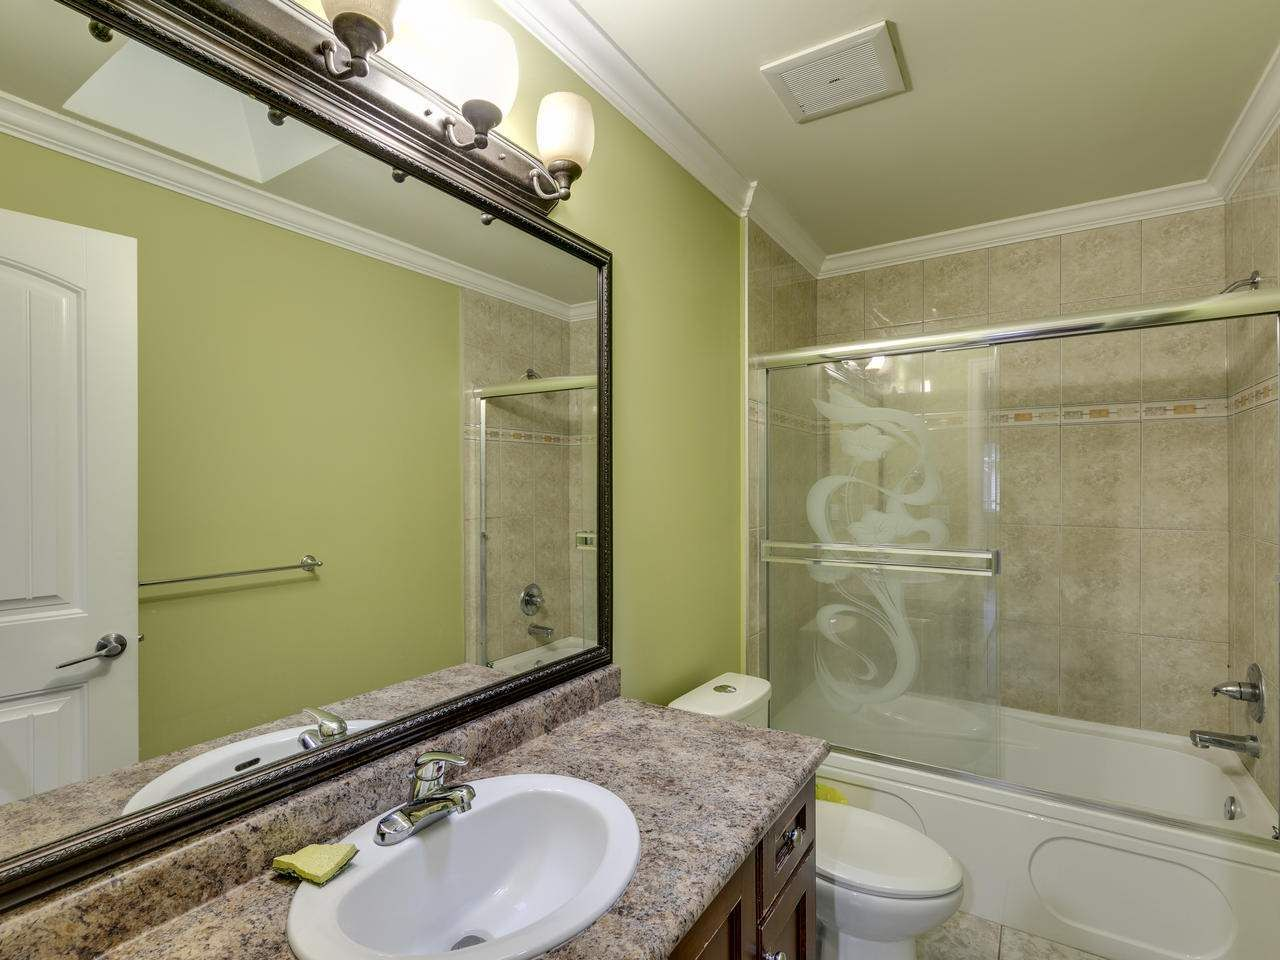 Photo 15: Photos: 7490 NO. 4 Road in Richmond: McLennan House for sale : MLS®# R2425068